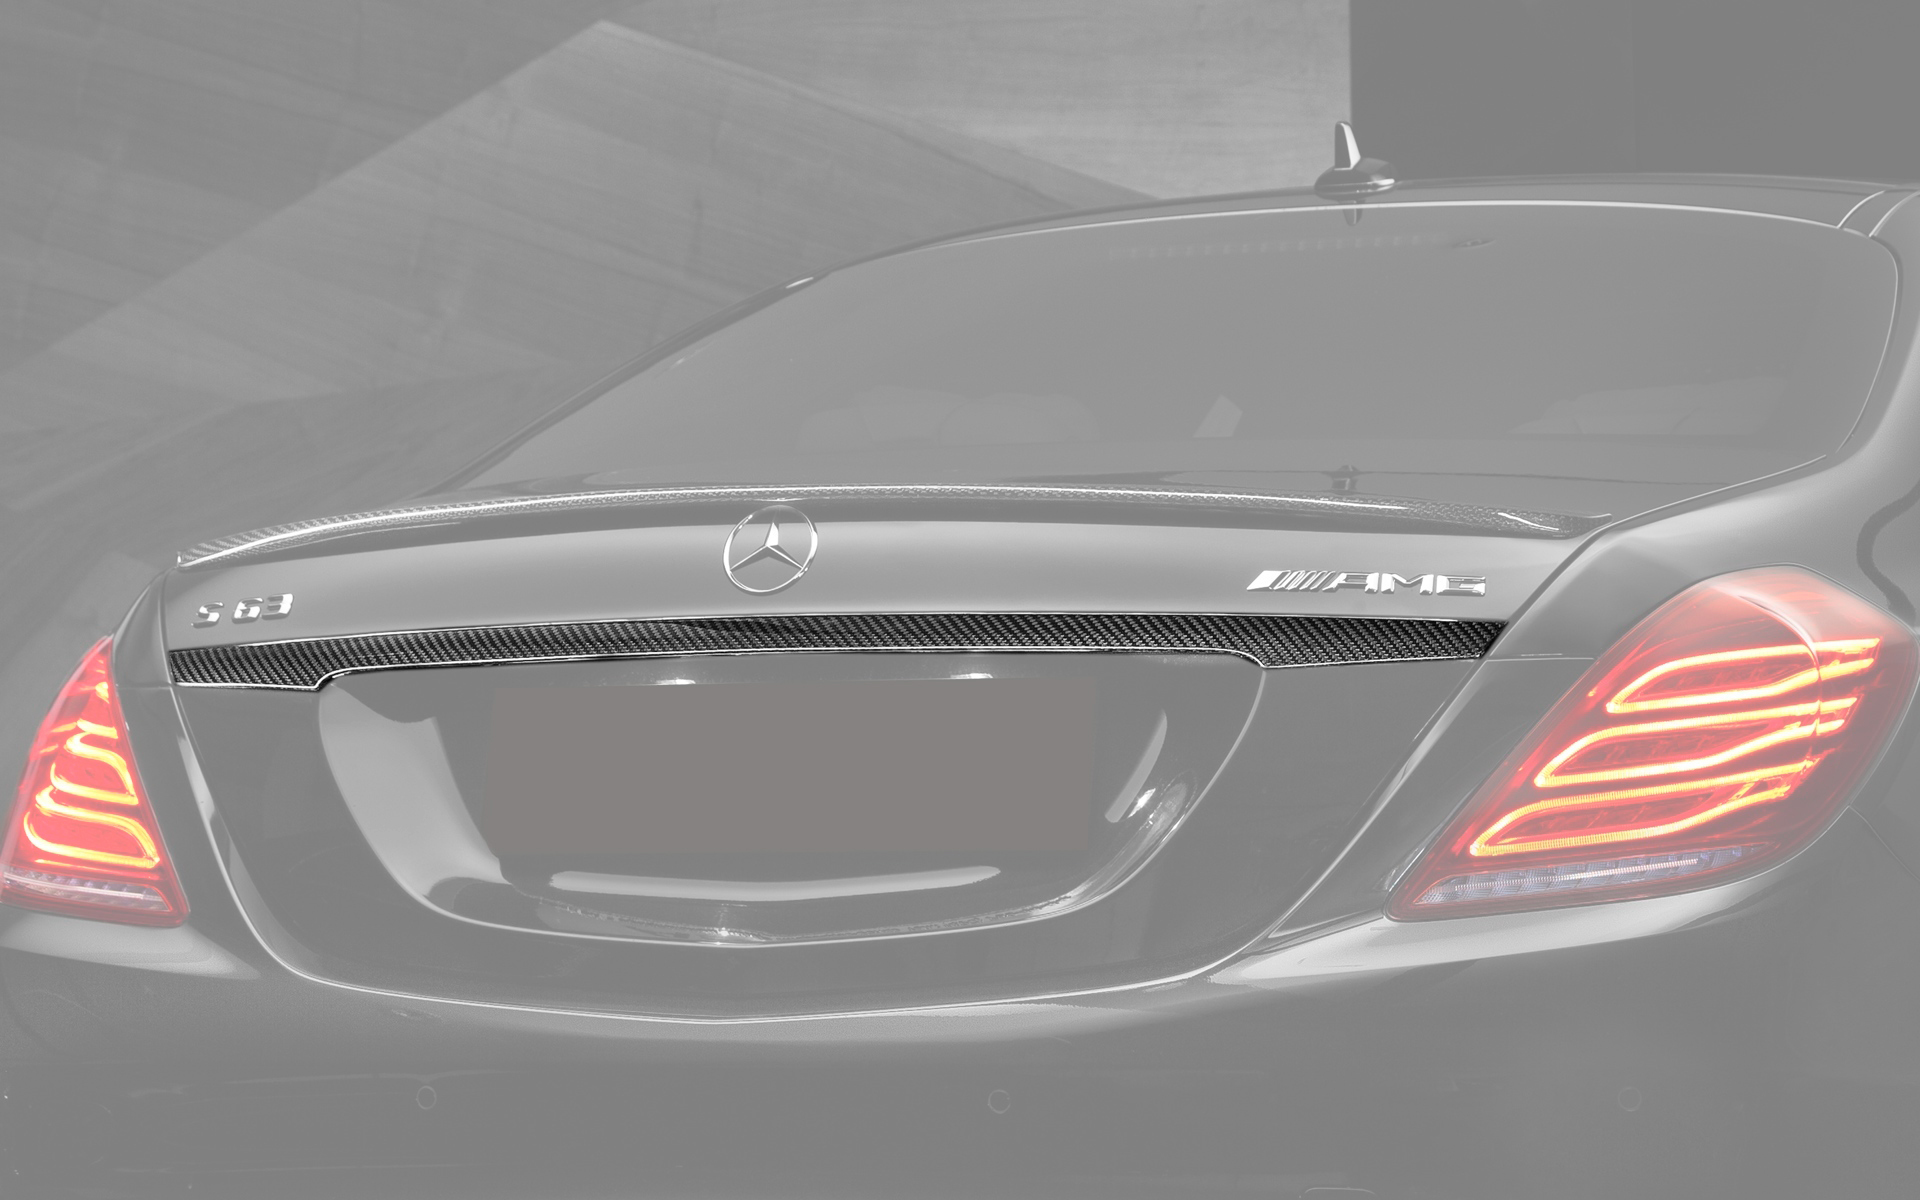 Hodoor Performance Carbon fiber trim on the trunk above number 63 AMG Brabus Style for Mercedes S-class W222